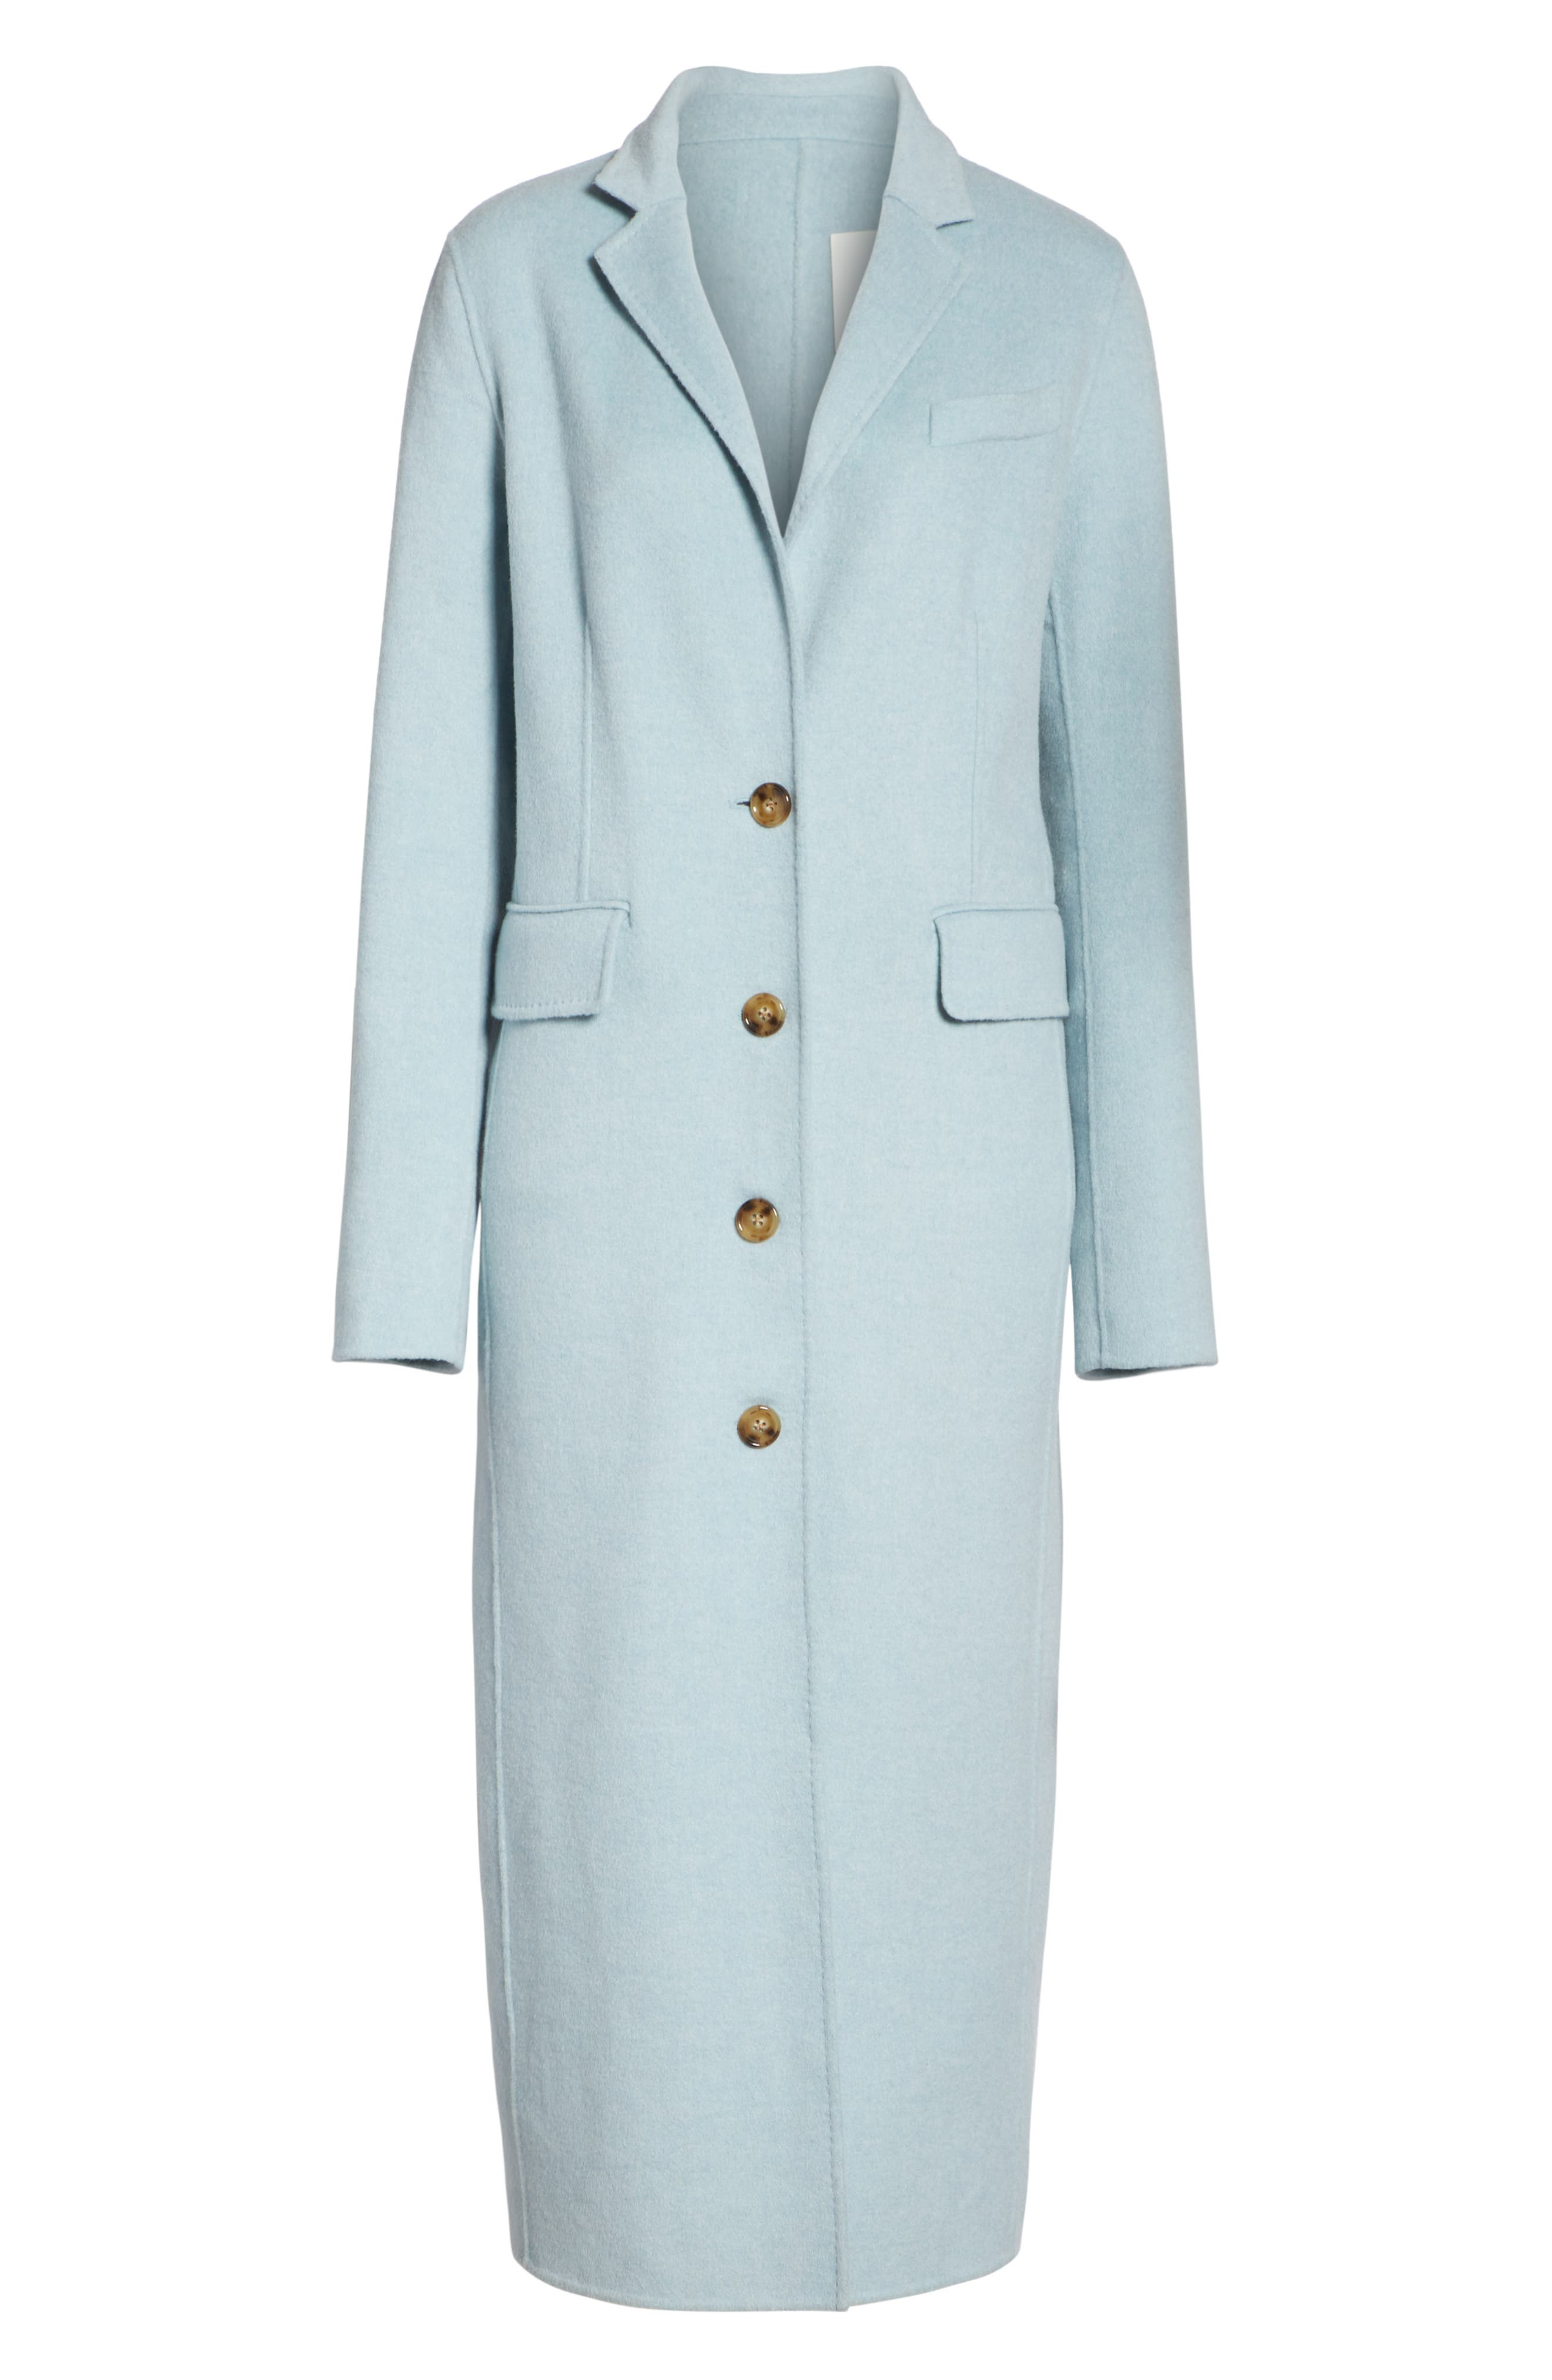 ELIZABETH AND JAMES,                             Russell Wool Blend Coat,                             Alternate thumbnail 5, color,                             400